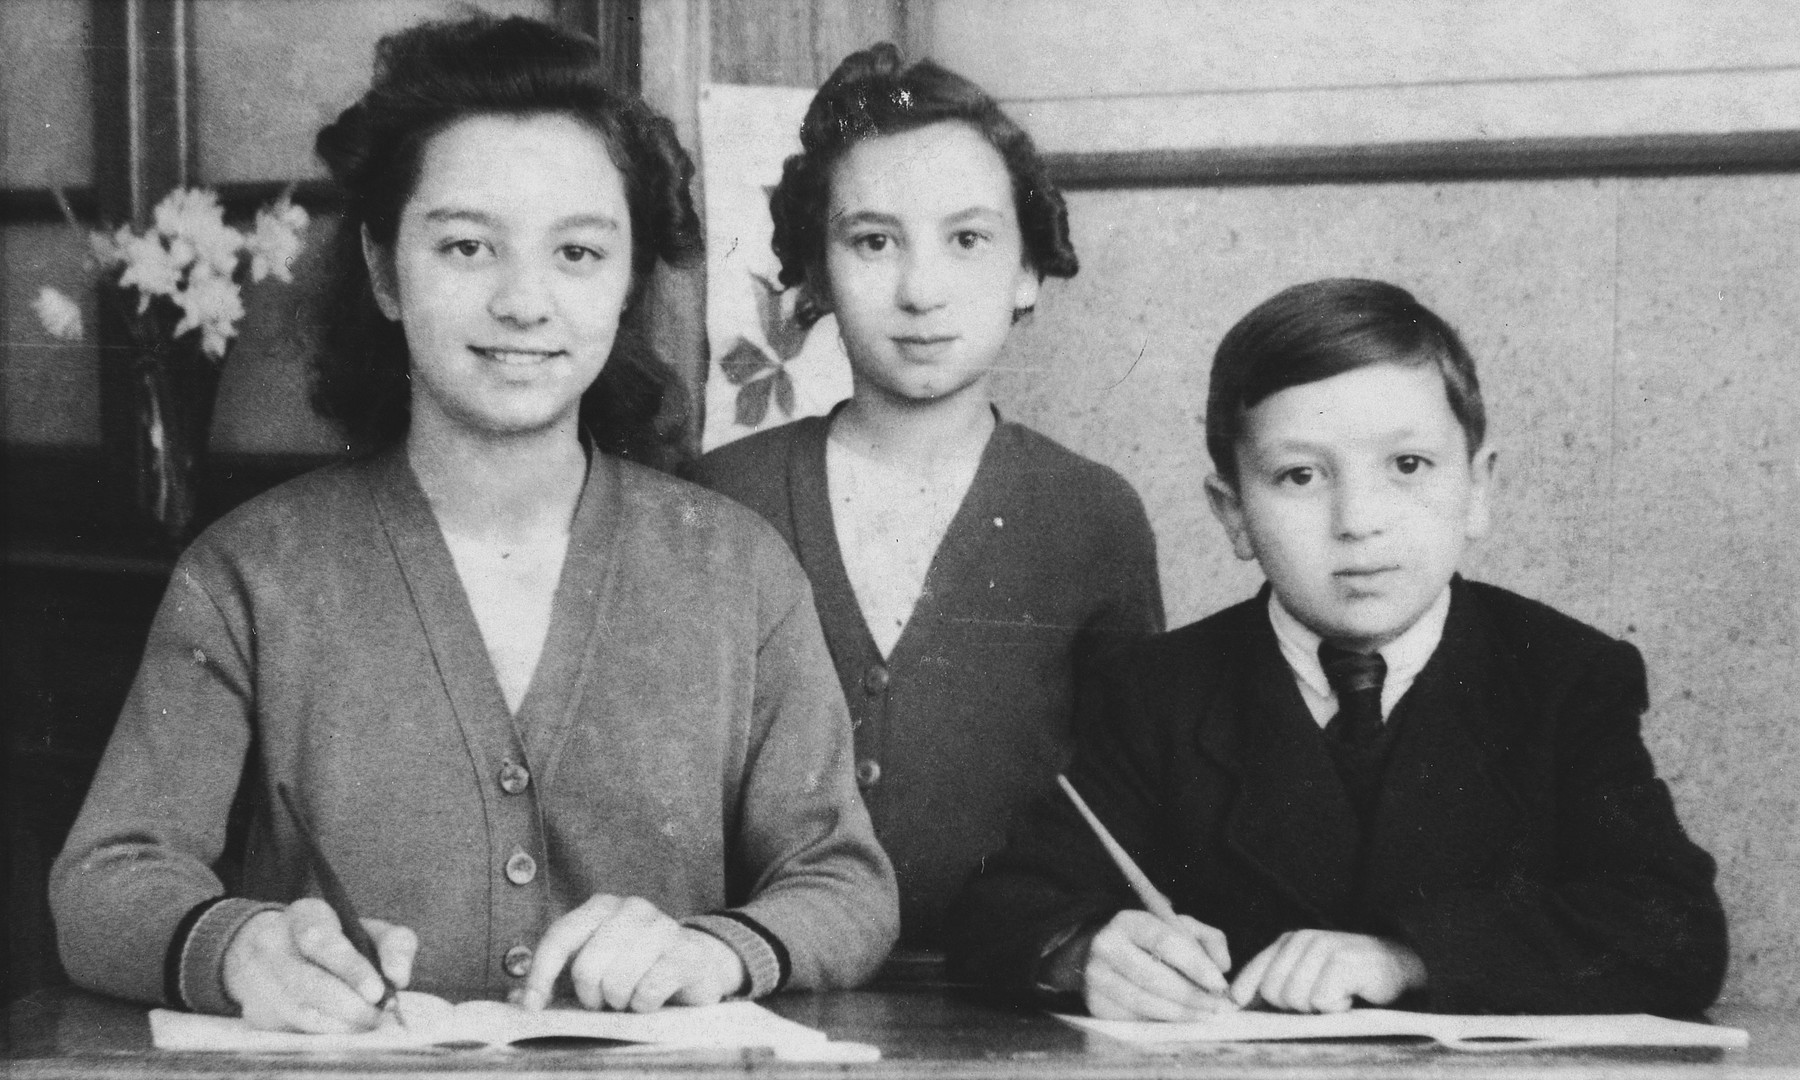 Close-up portrait of three Belgian-Jewish siblings writing in their school books.  From left to right are Anny, Cecile and Charles Rojer.